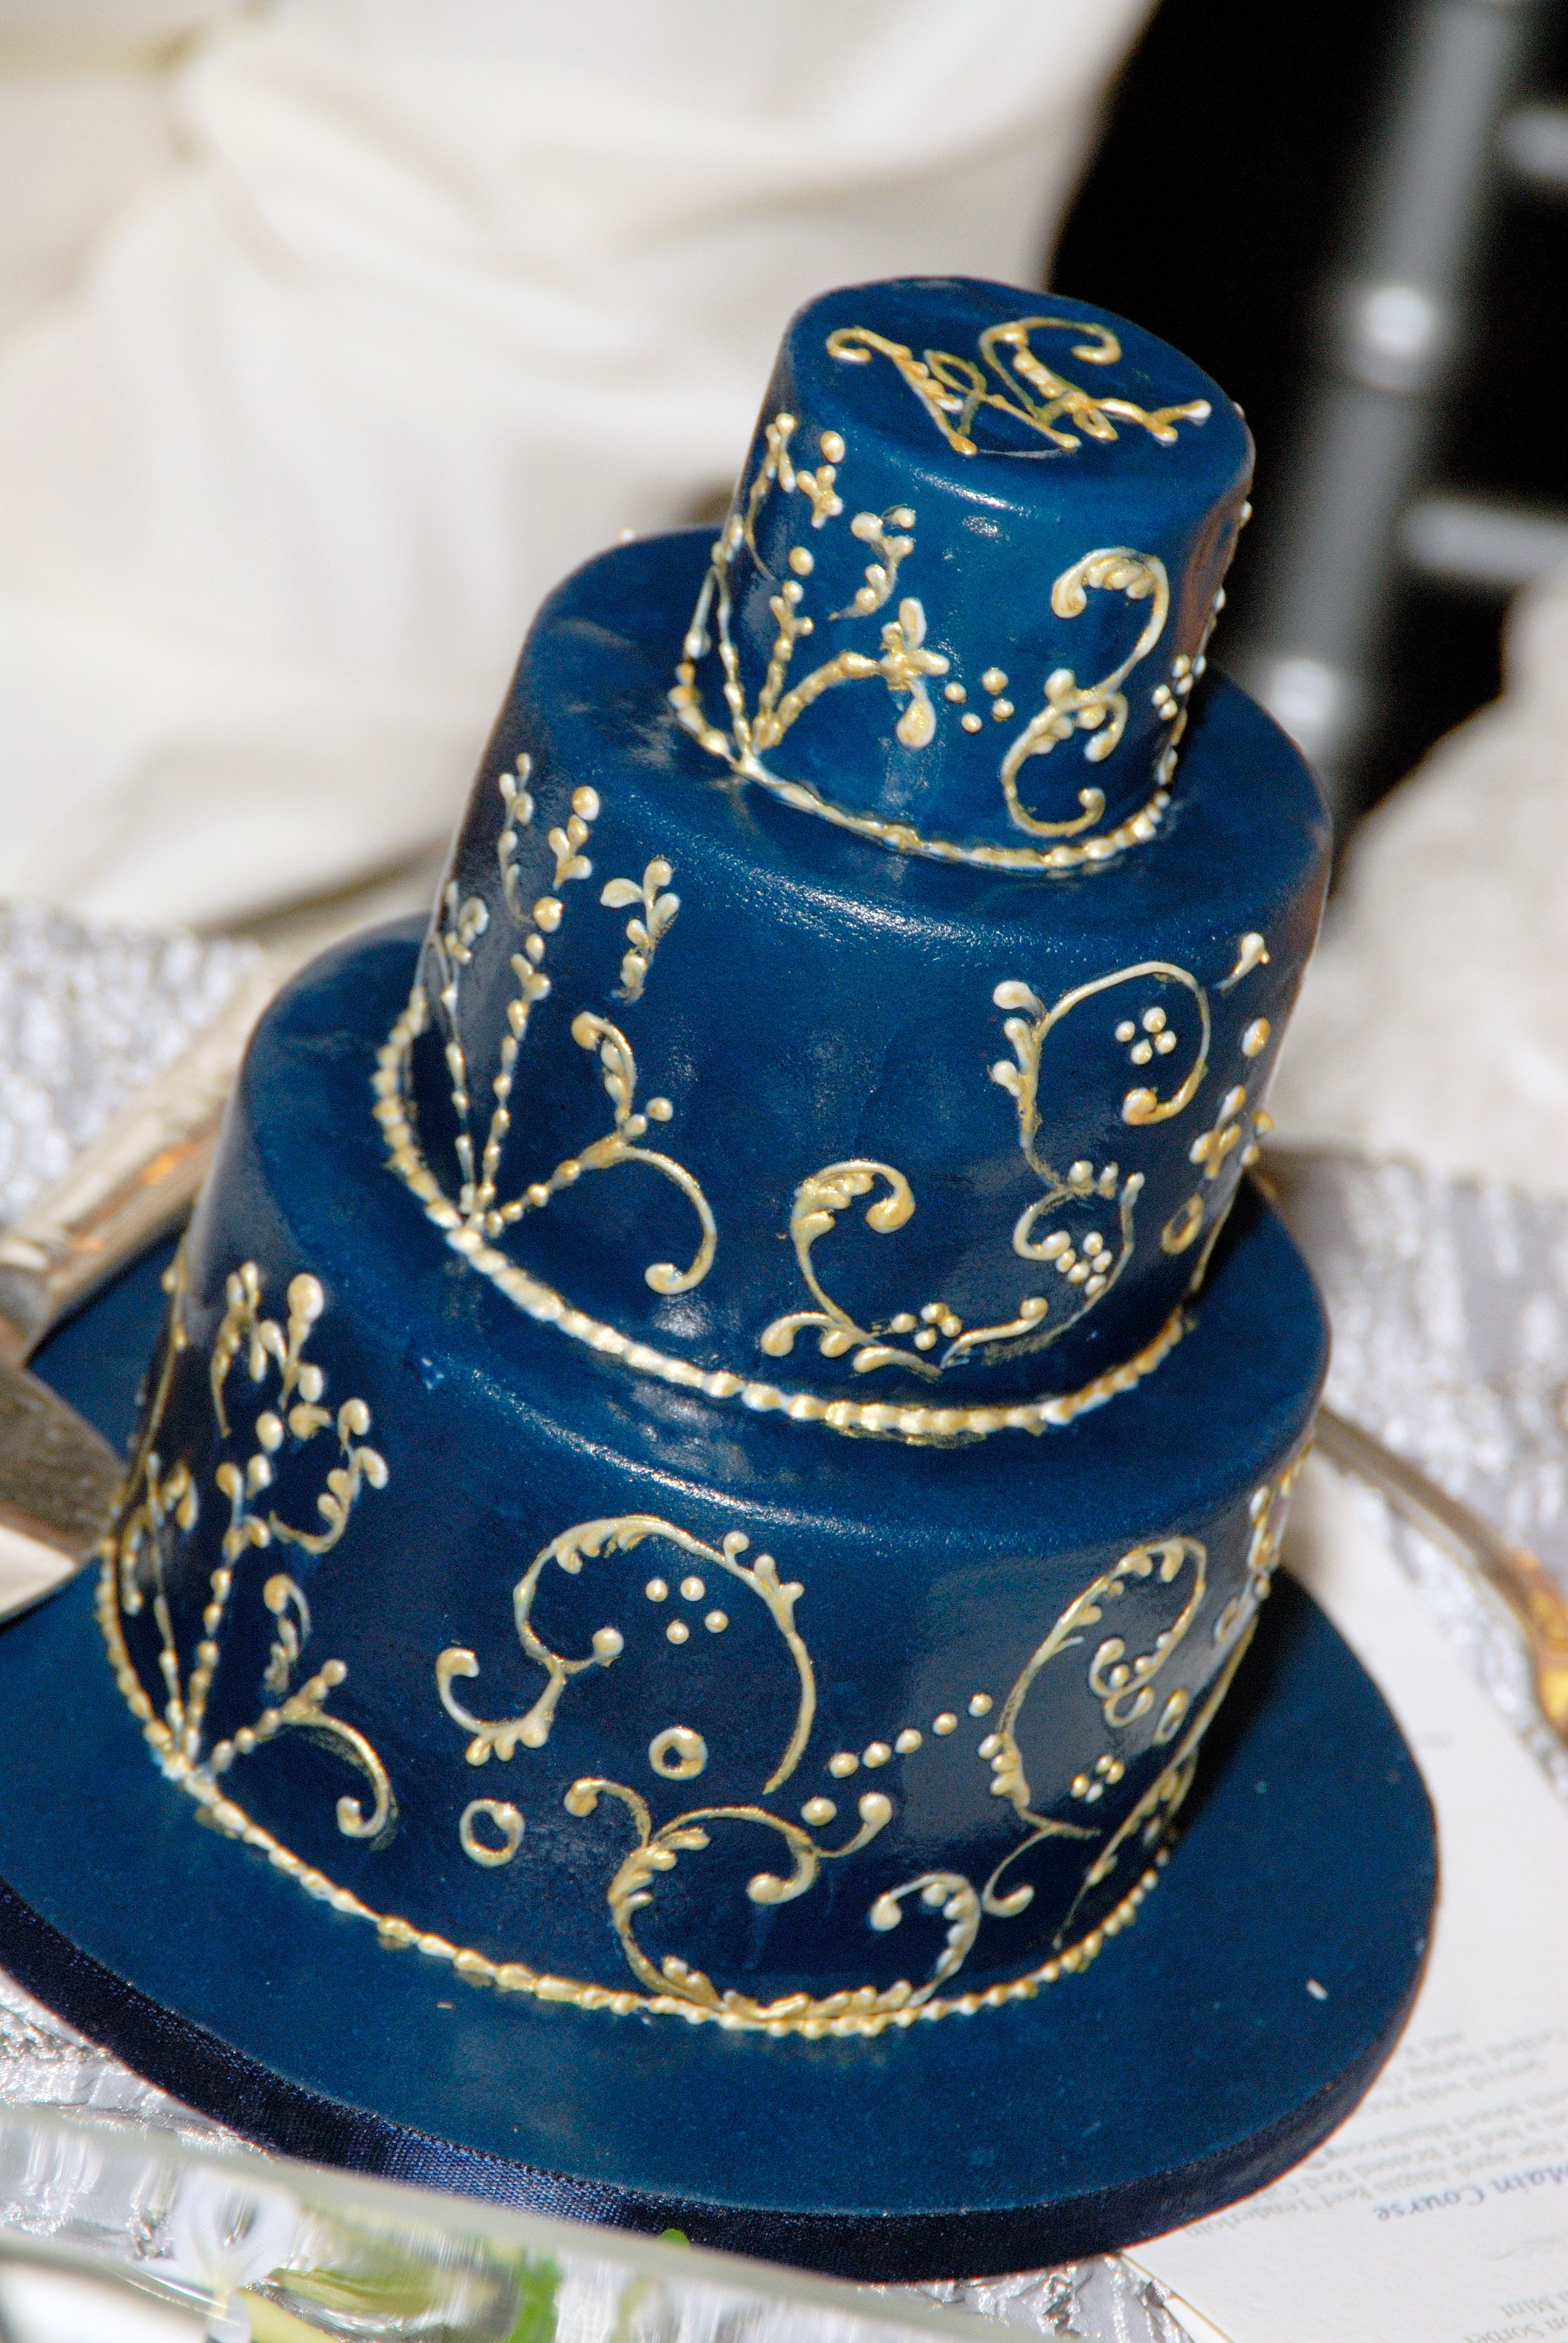 Turkish Egyptian wedding cake designed by Calla Lily